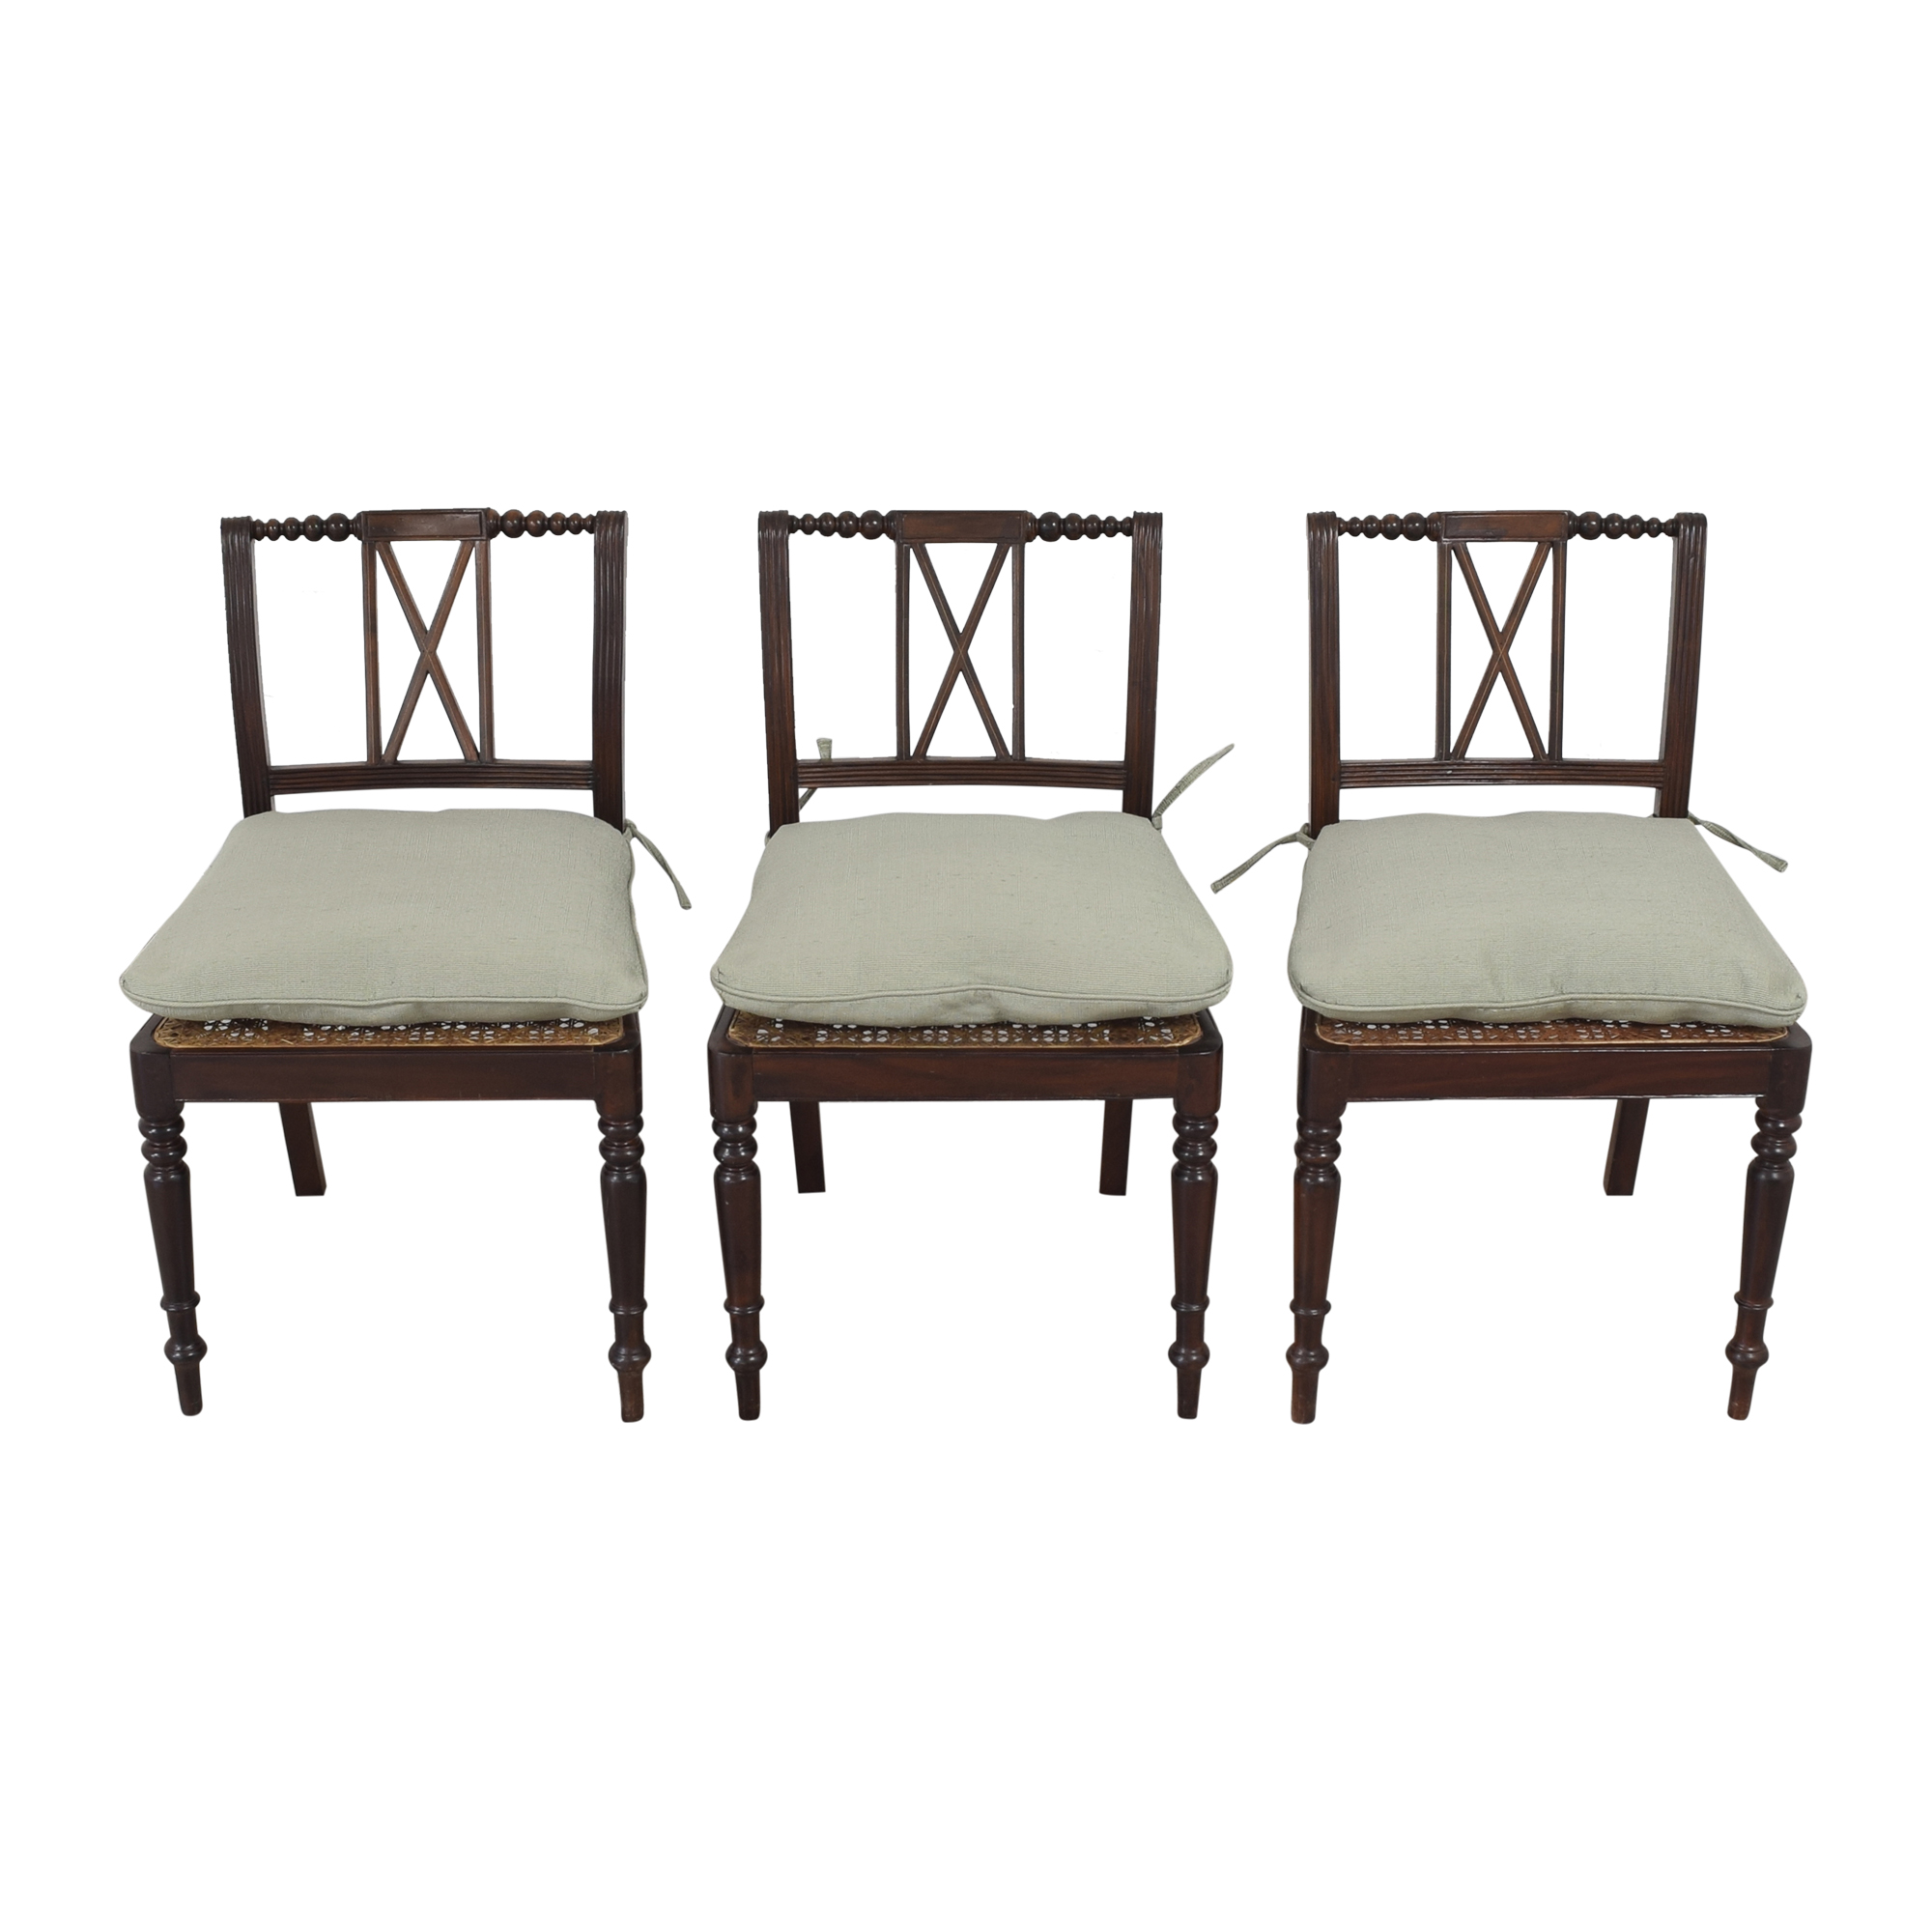 X Back Dining Side Chairs with Cushions / Chairs